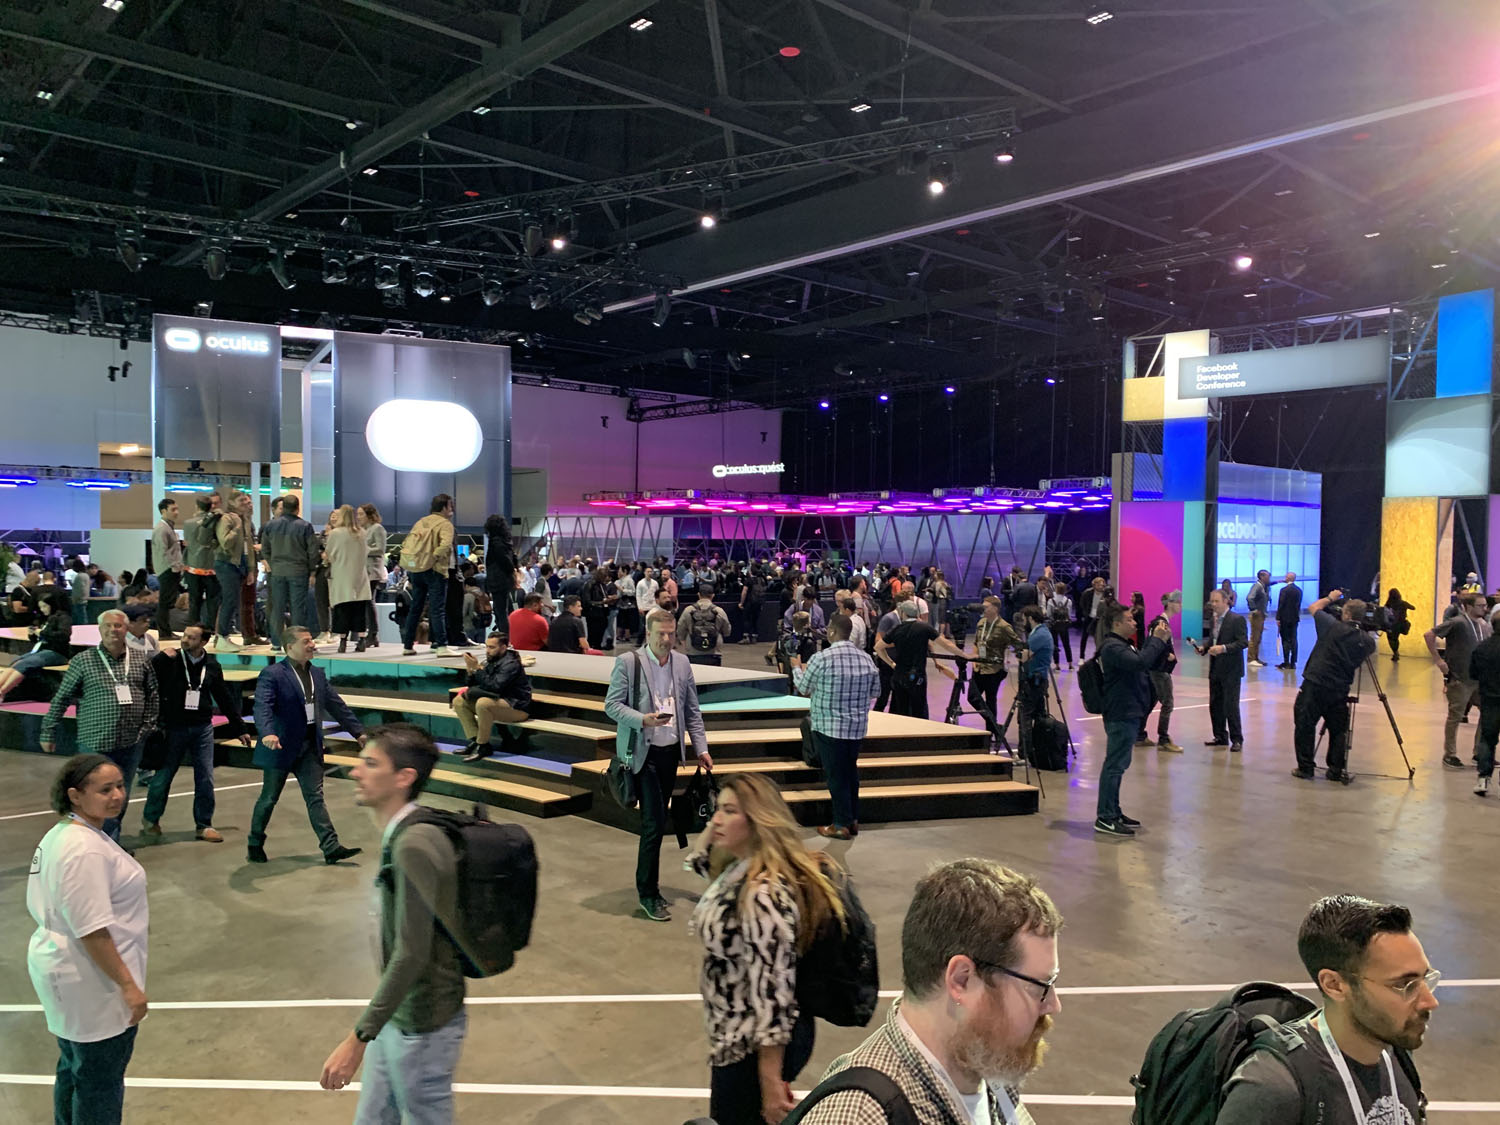 Keeping it private: Marketforce's Chris Andrawes @ F8 Facebook conference – Day 1